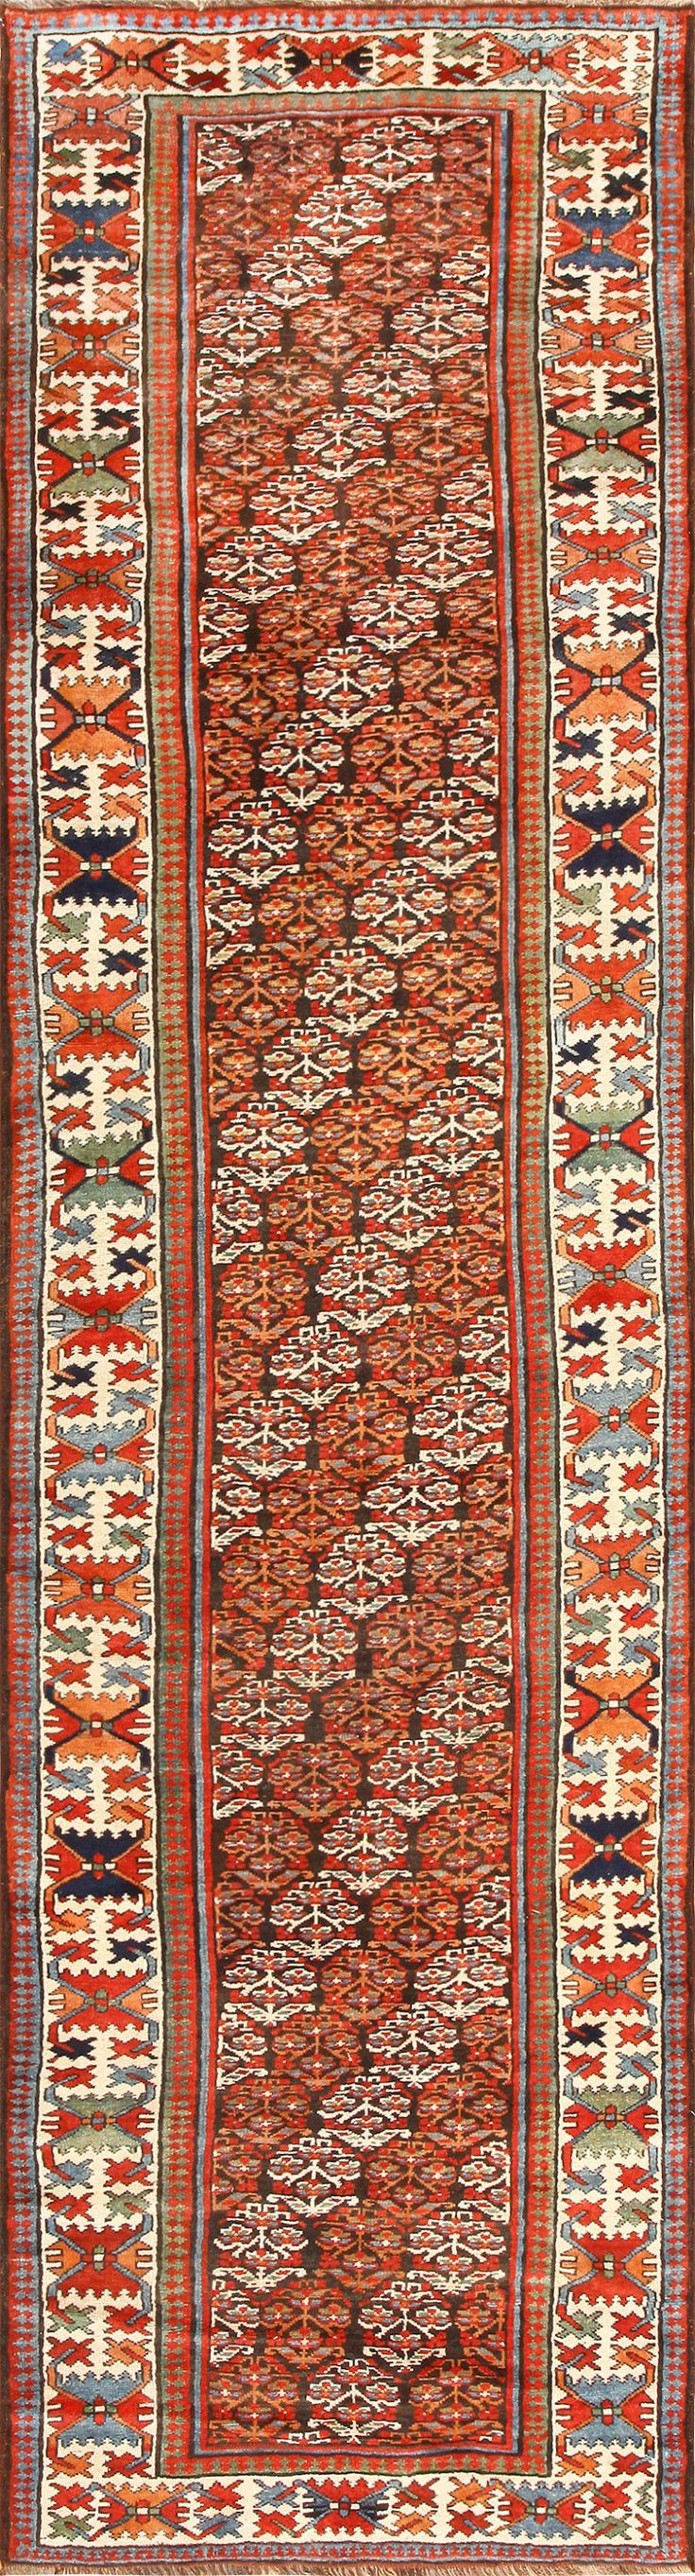 medallion beautiful rug serapi color antique rugs red bakshaish persian tribal optimal nazmiyal heriz